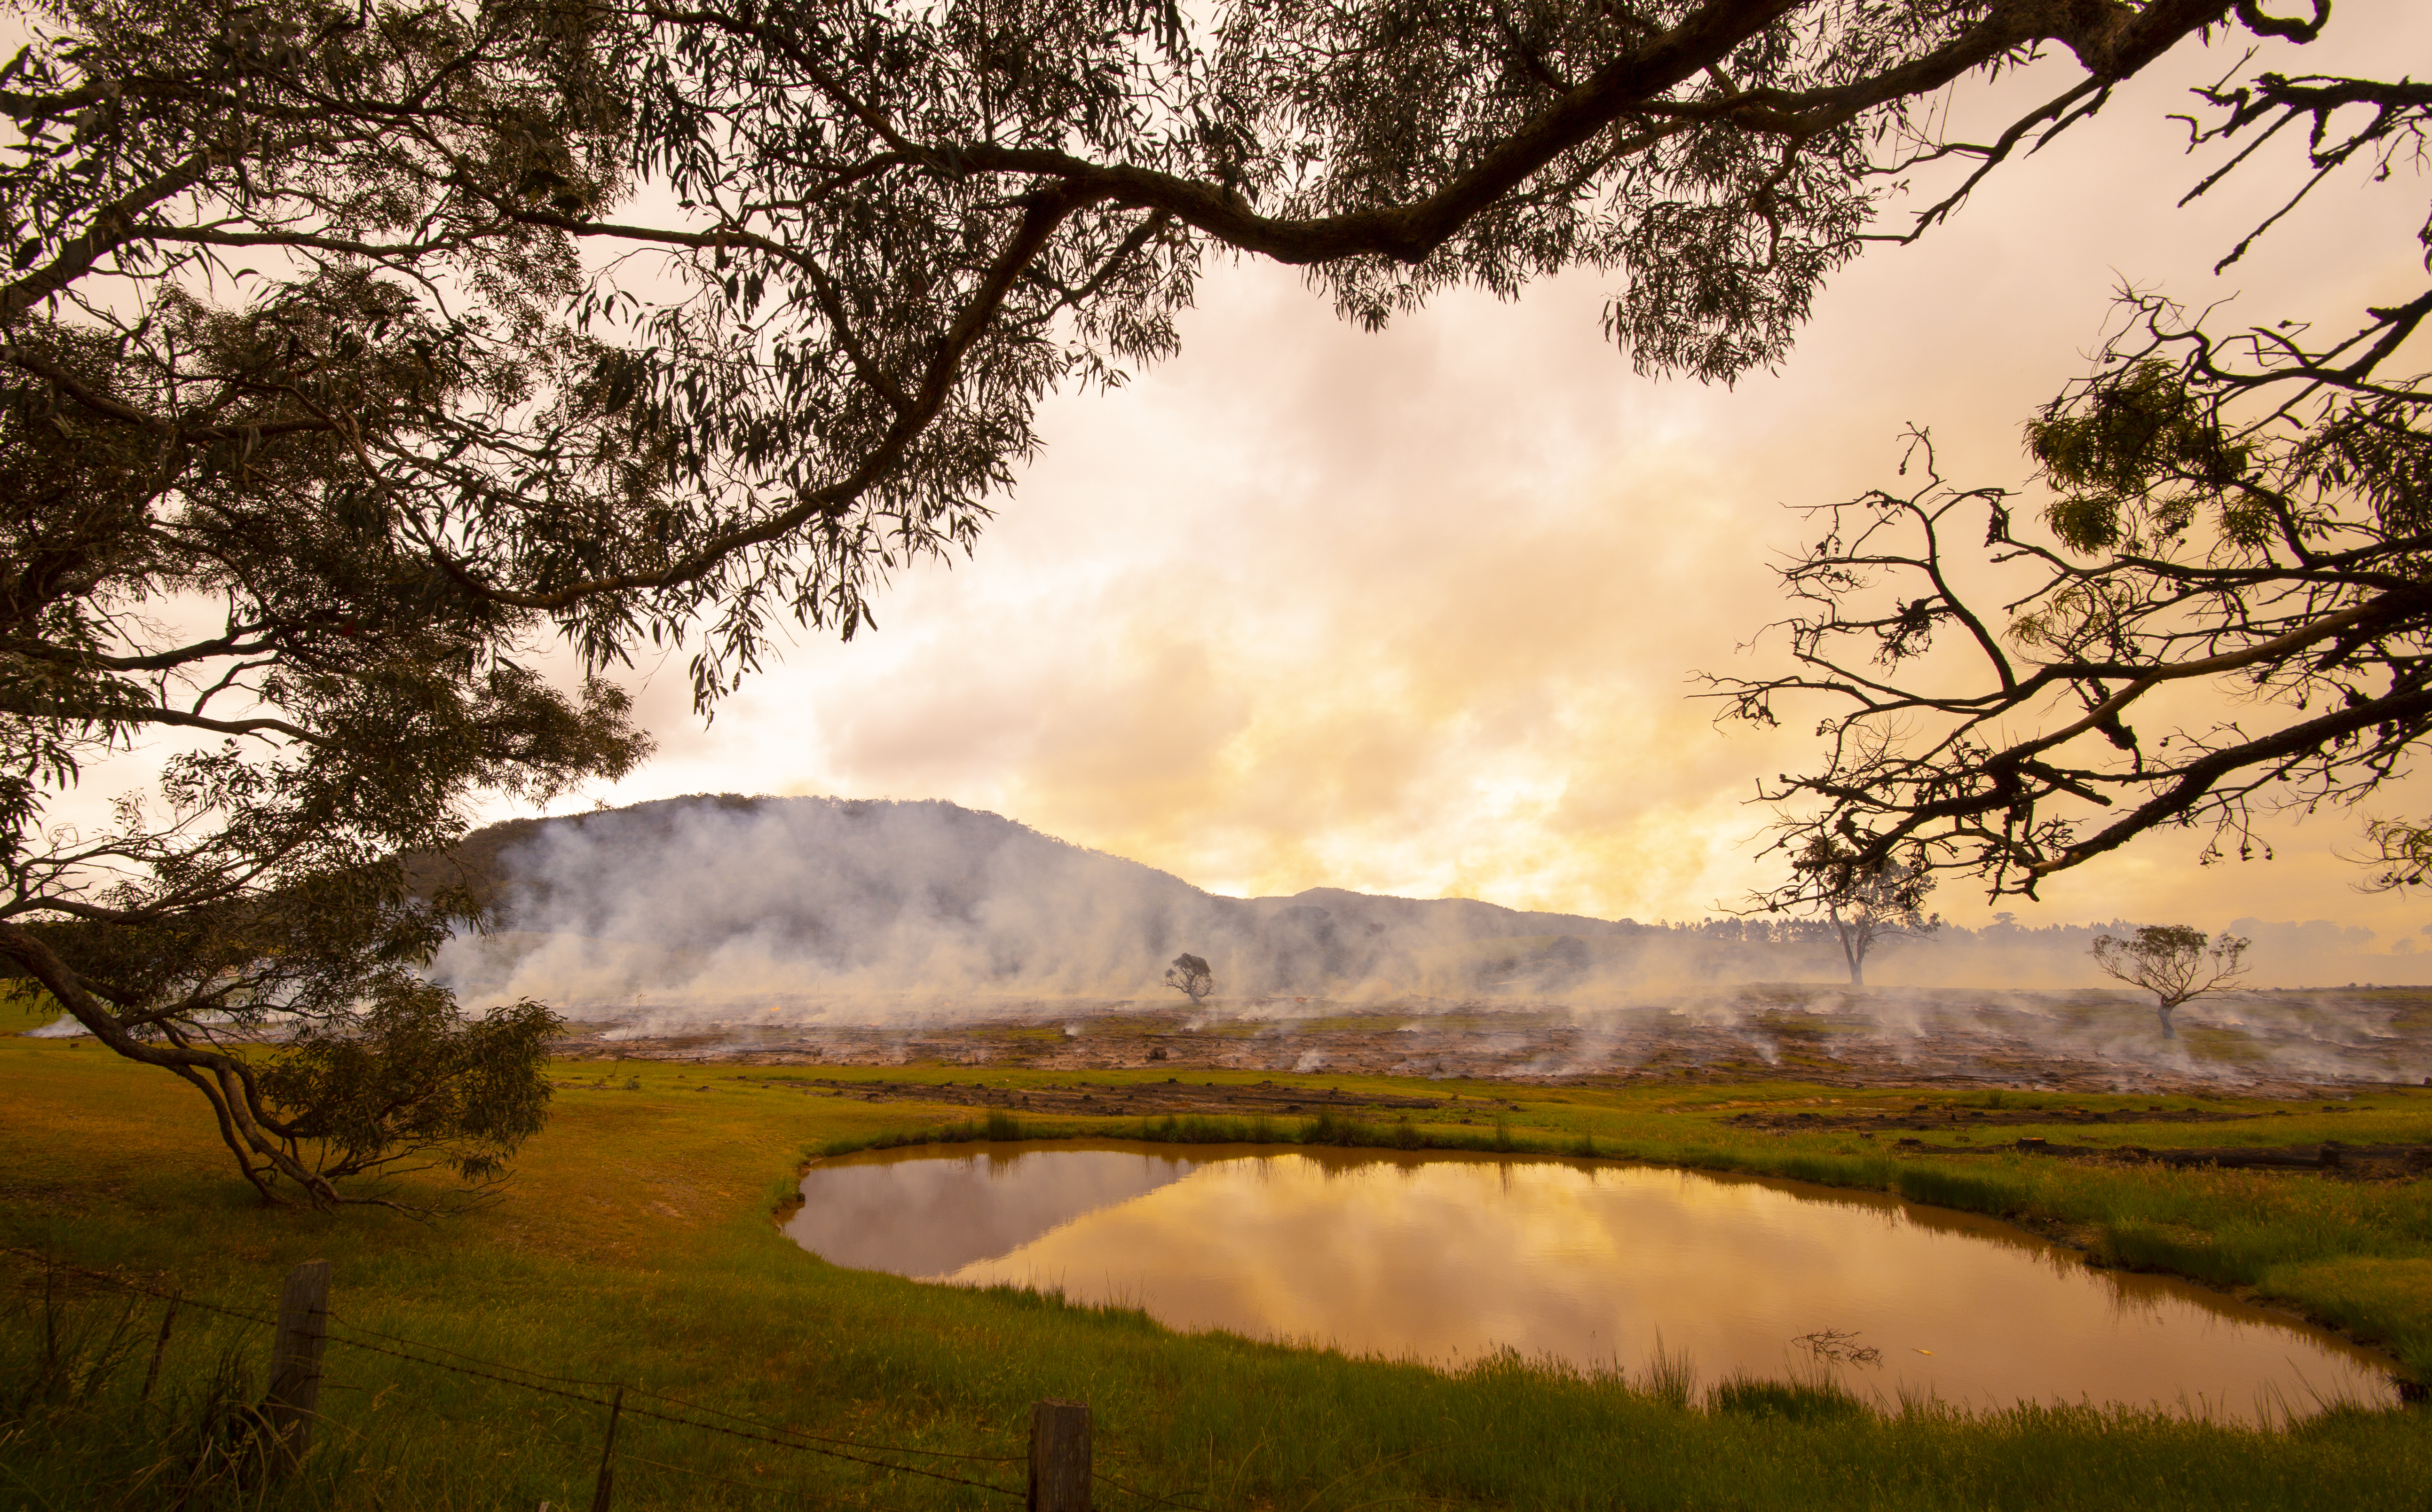 Residents urged to prepare as fire season approaches